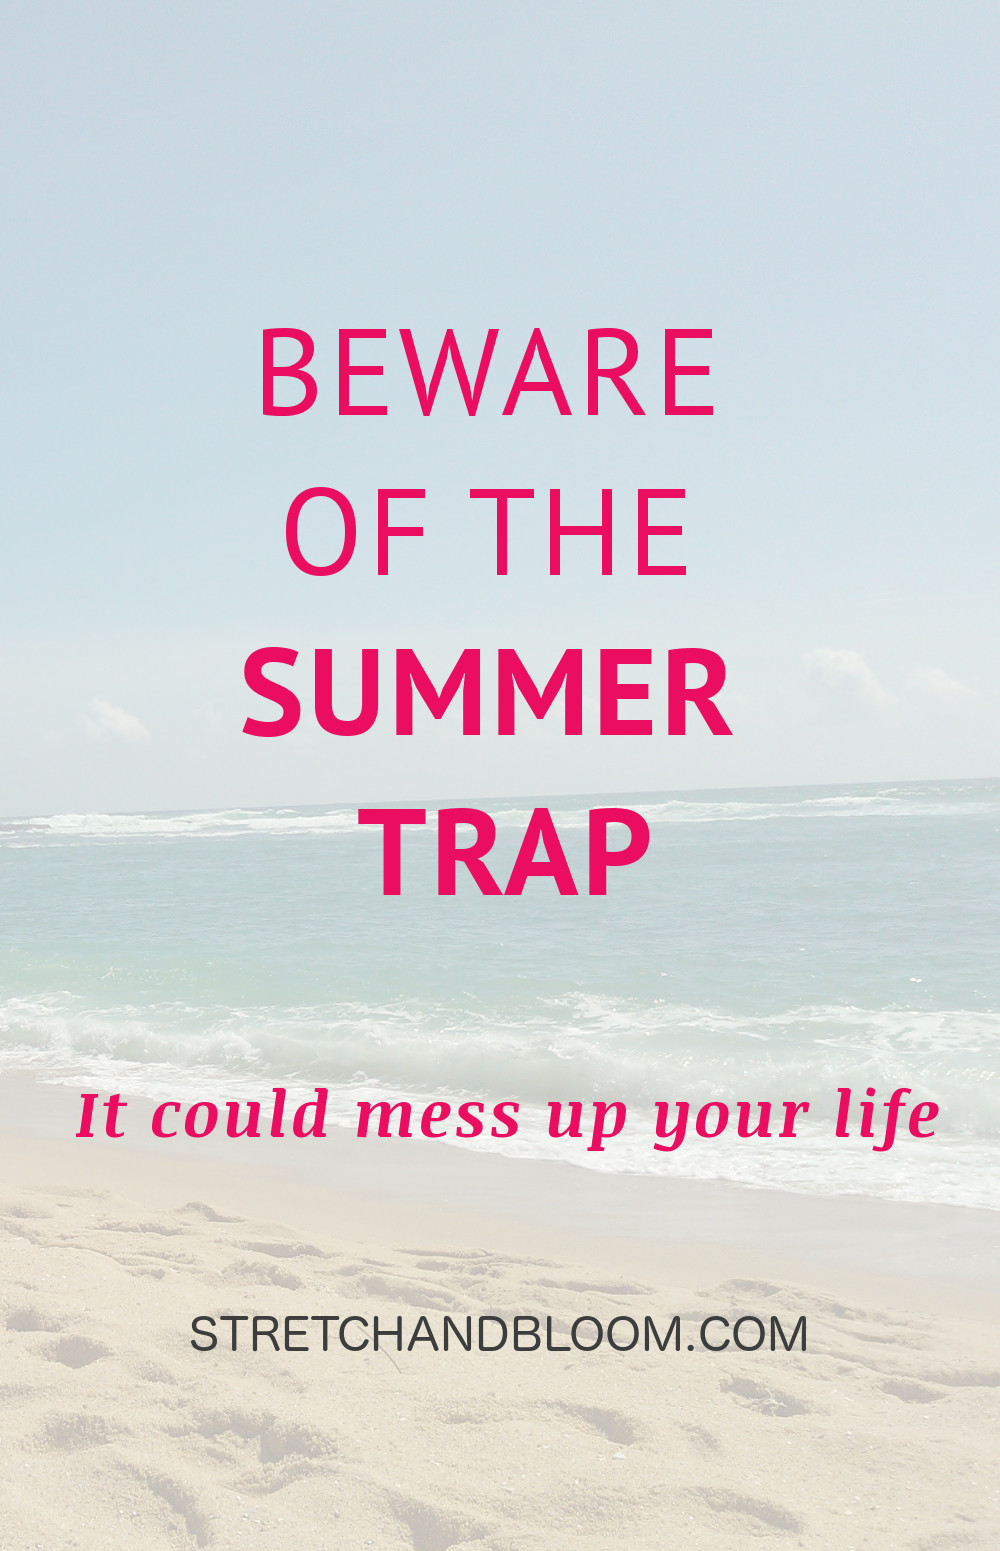 Summer is almost here and everybody is getting ready to enjoy a well-deserved rest. If you're working on a long-term goal though, beware of the summer trap.